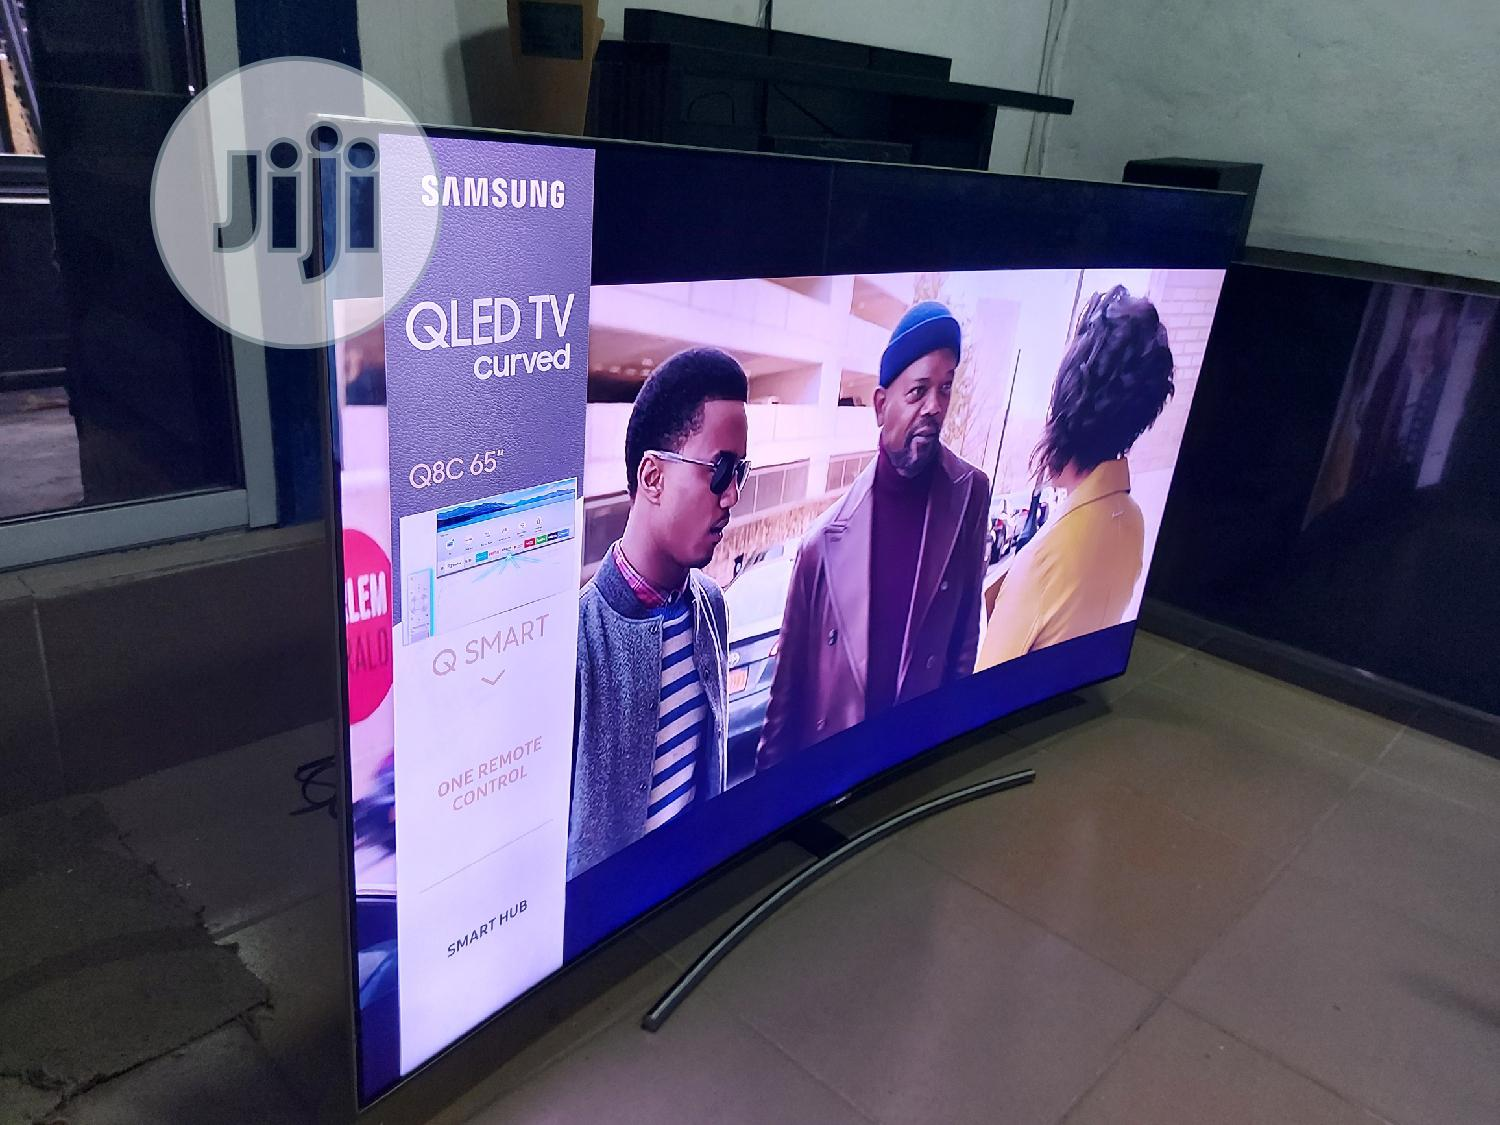 Archive: Samsung Curve 65inch Smart Qled TV, Q8C